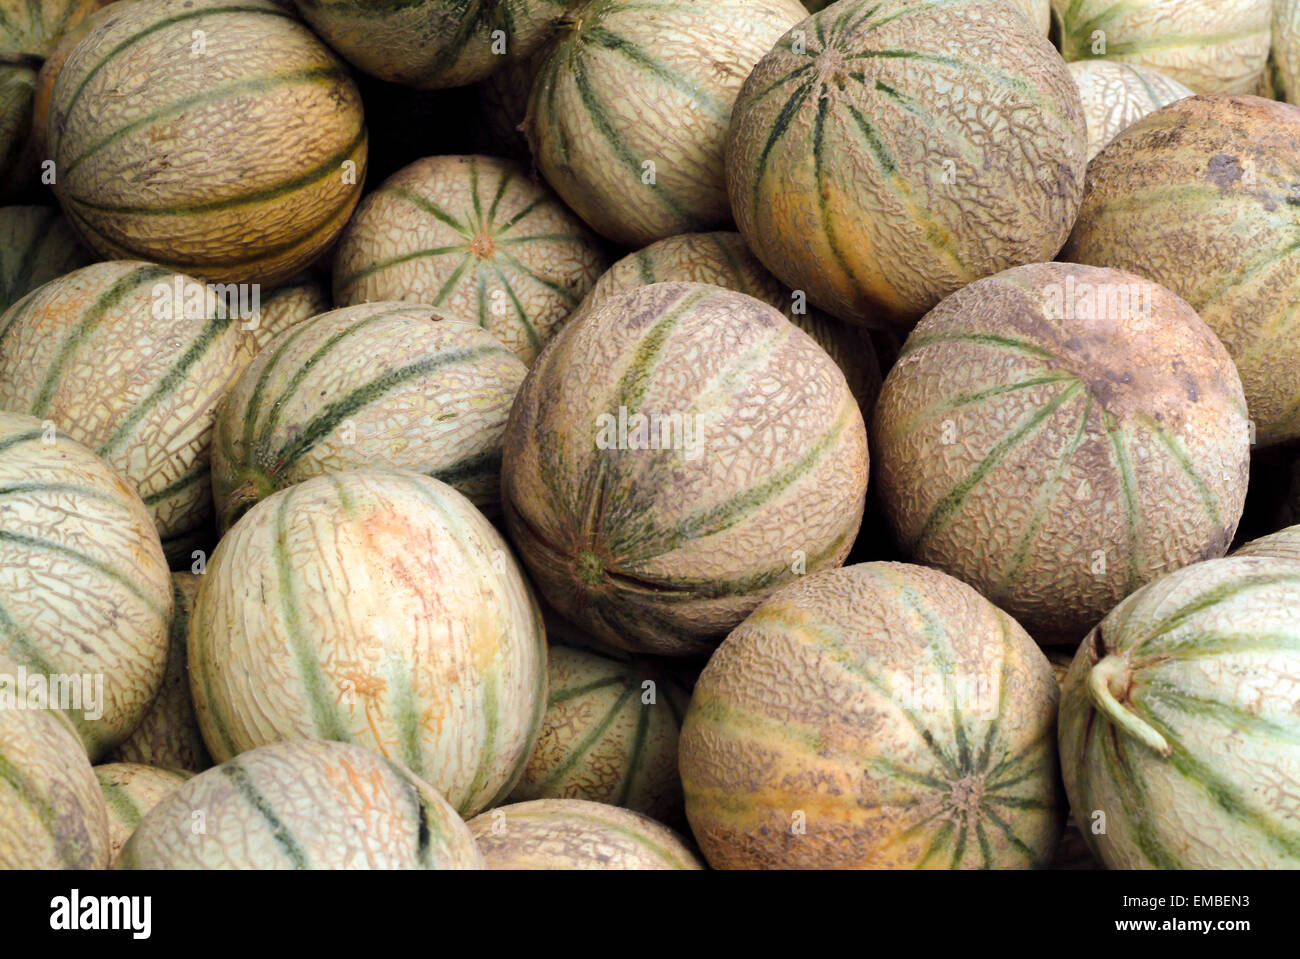 Muskmelon or cantaloupe or netted melon on a market stand in Provence France - Stock Image